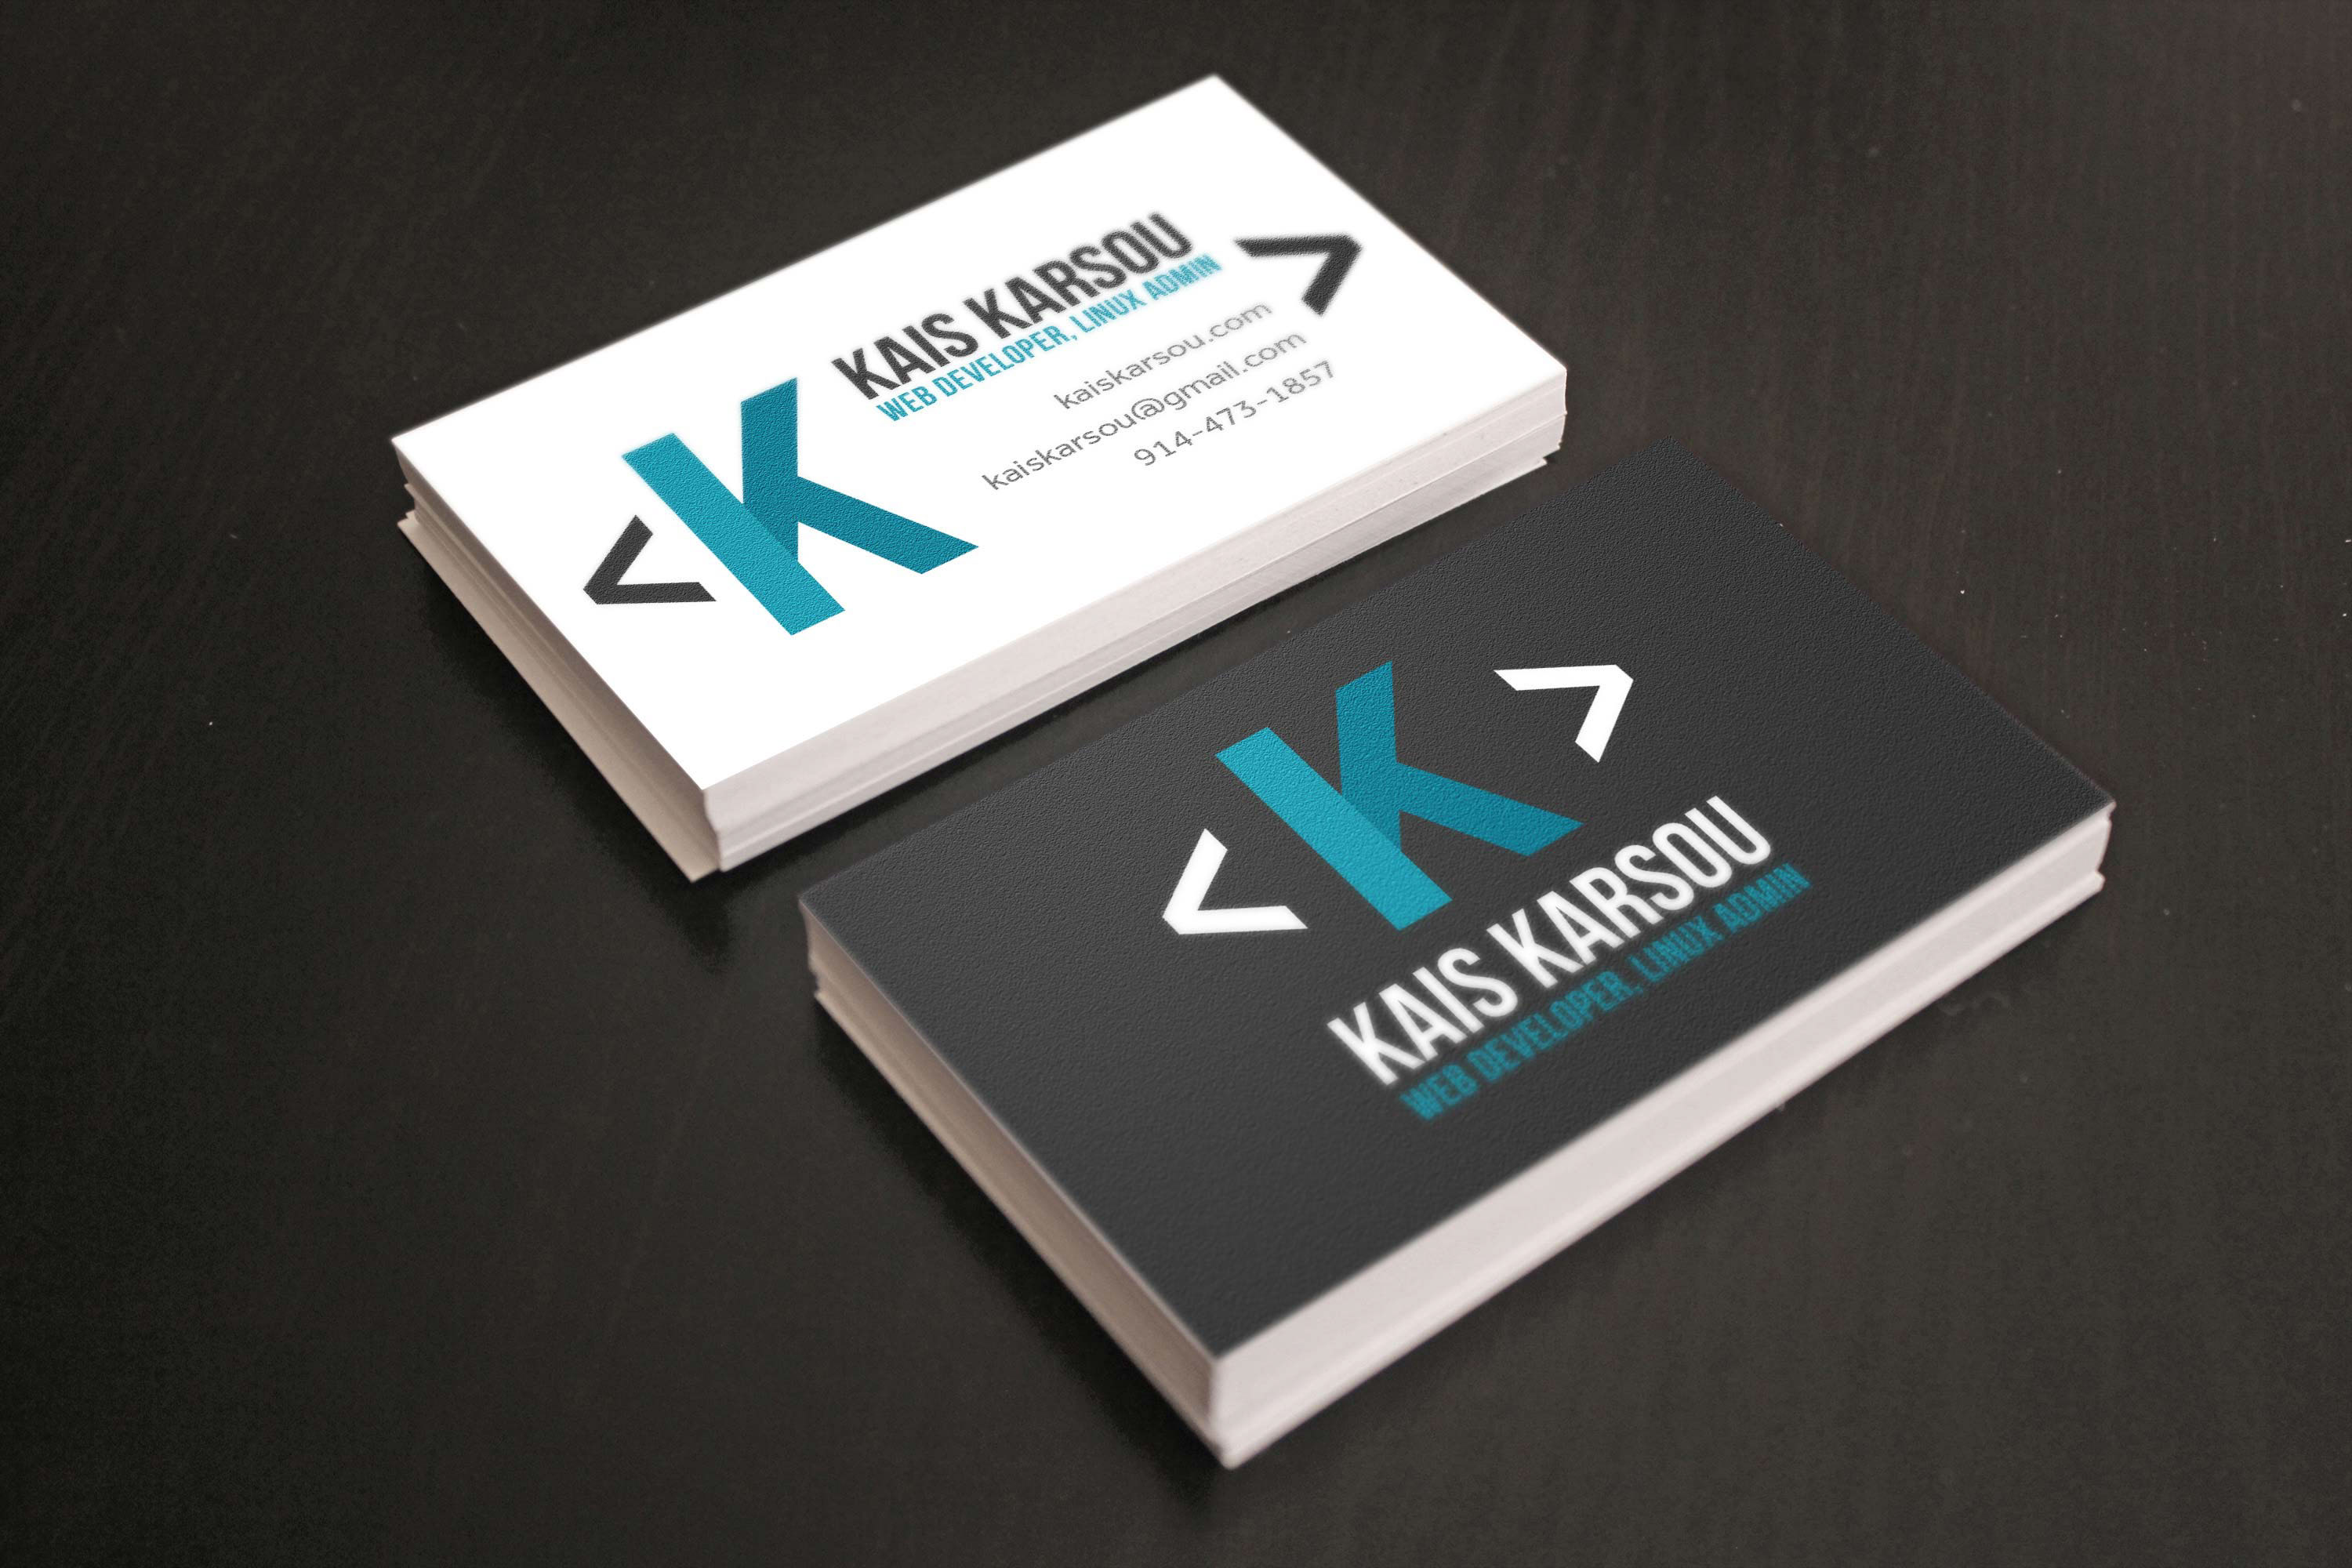 Beautiful things design studio personal brand logo and business cards colourmoves